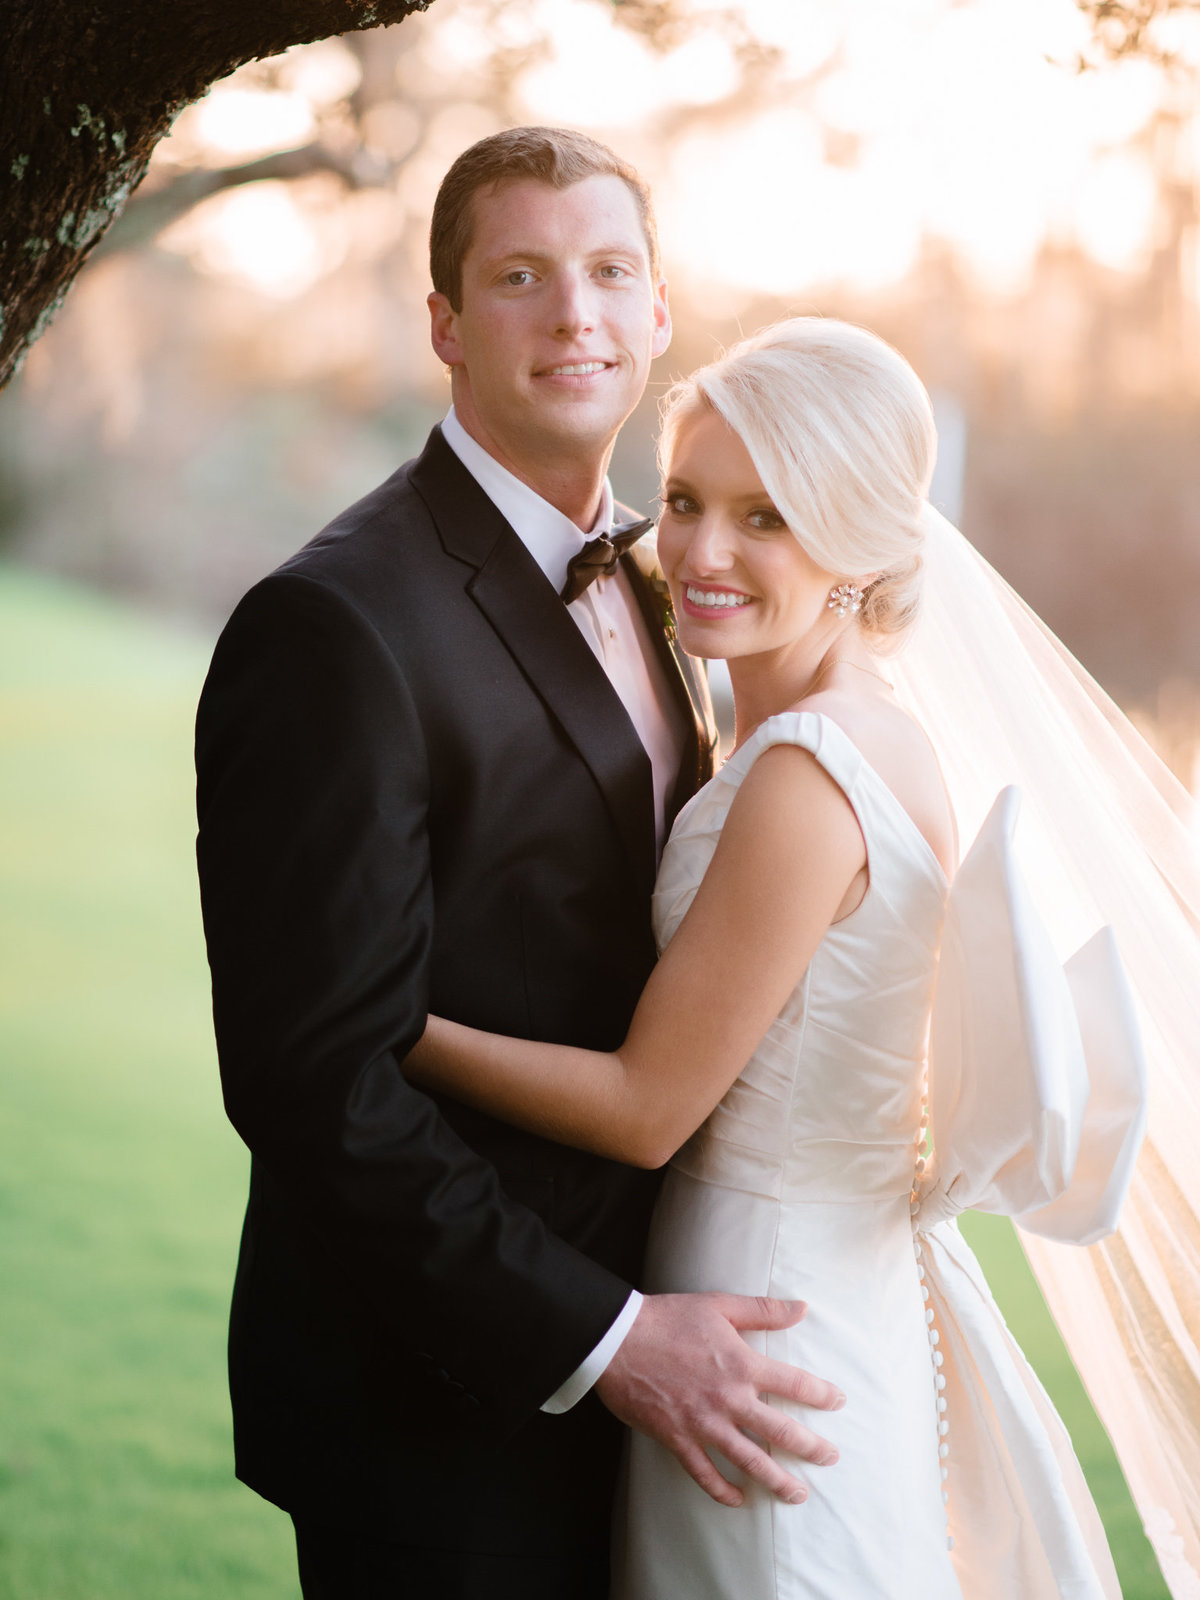 Caledonia Golf & Fish Club wedding outside of Charleston, SC by Pasha Belman Photog-65